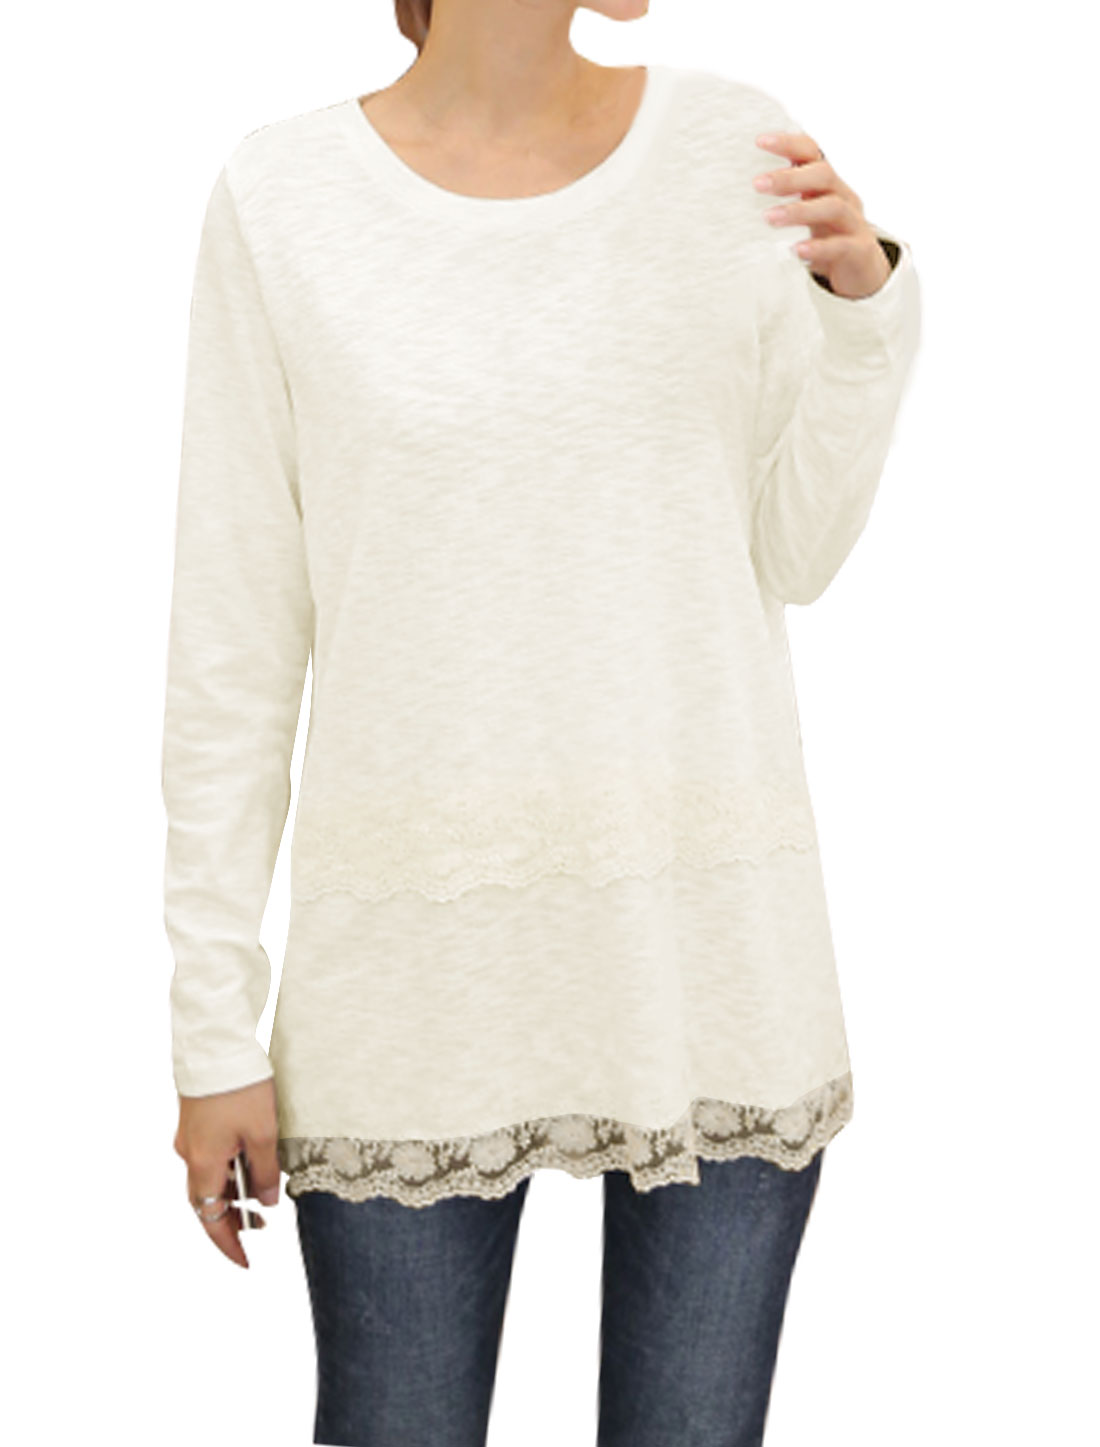 Women Round Neck Long Sleeves Crochet Layered Tunic Top White XS